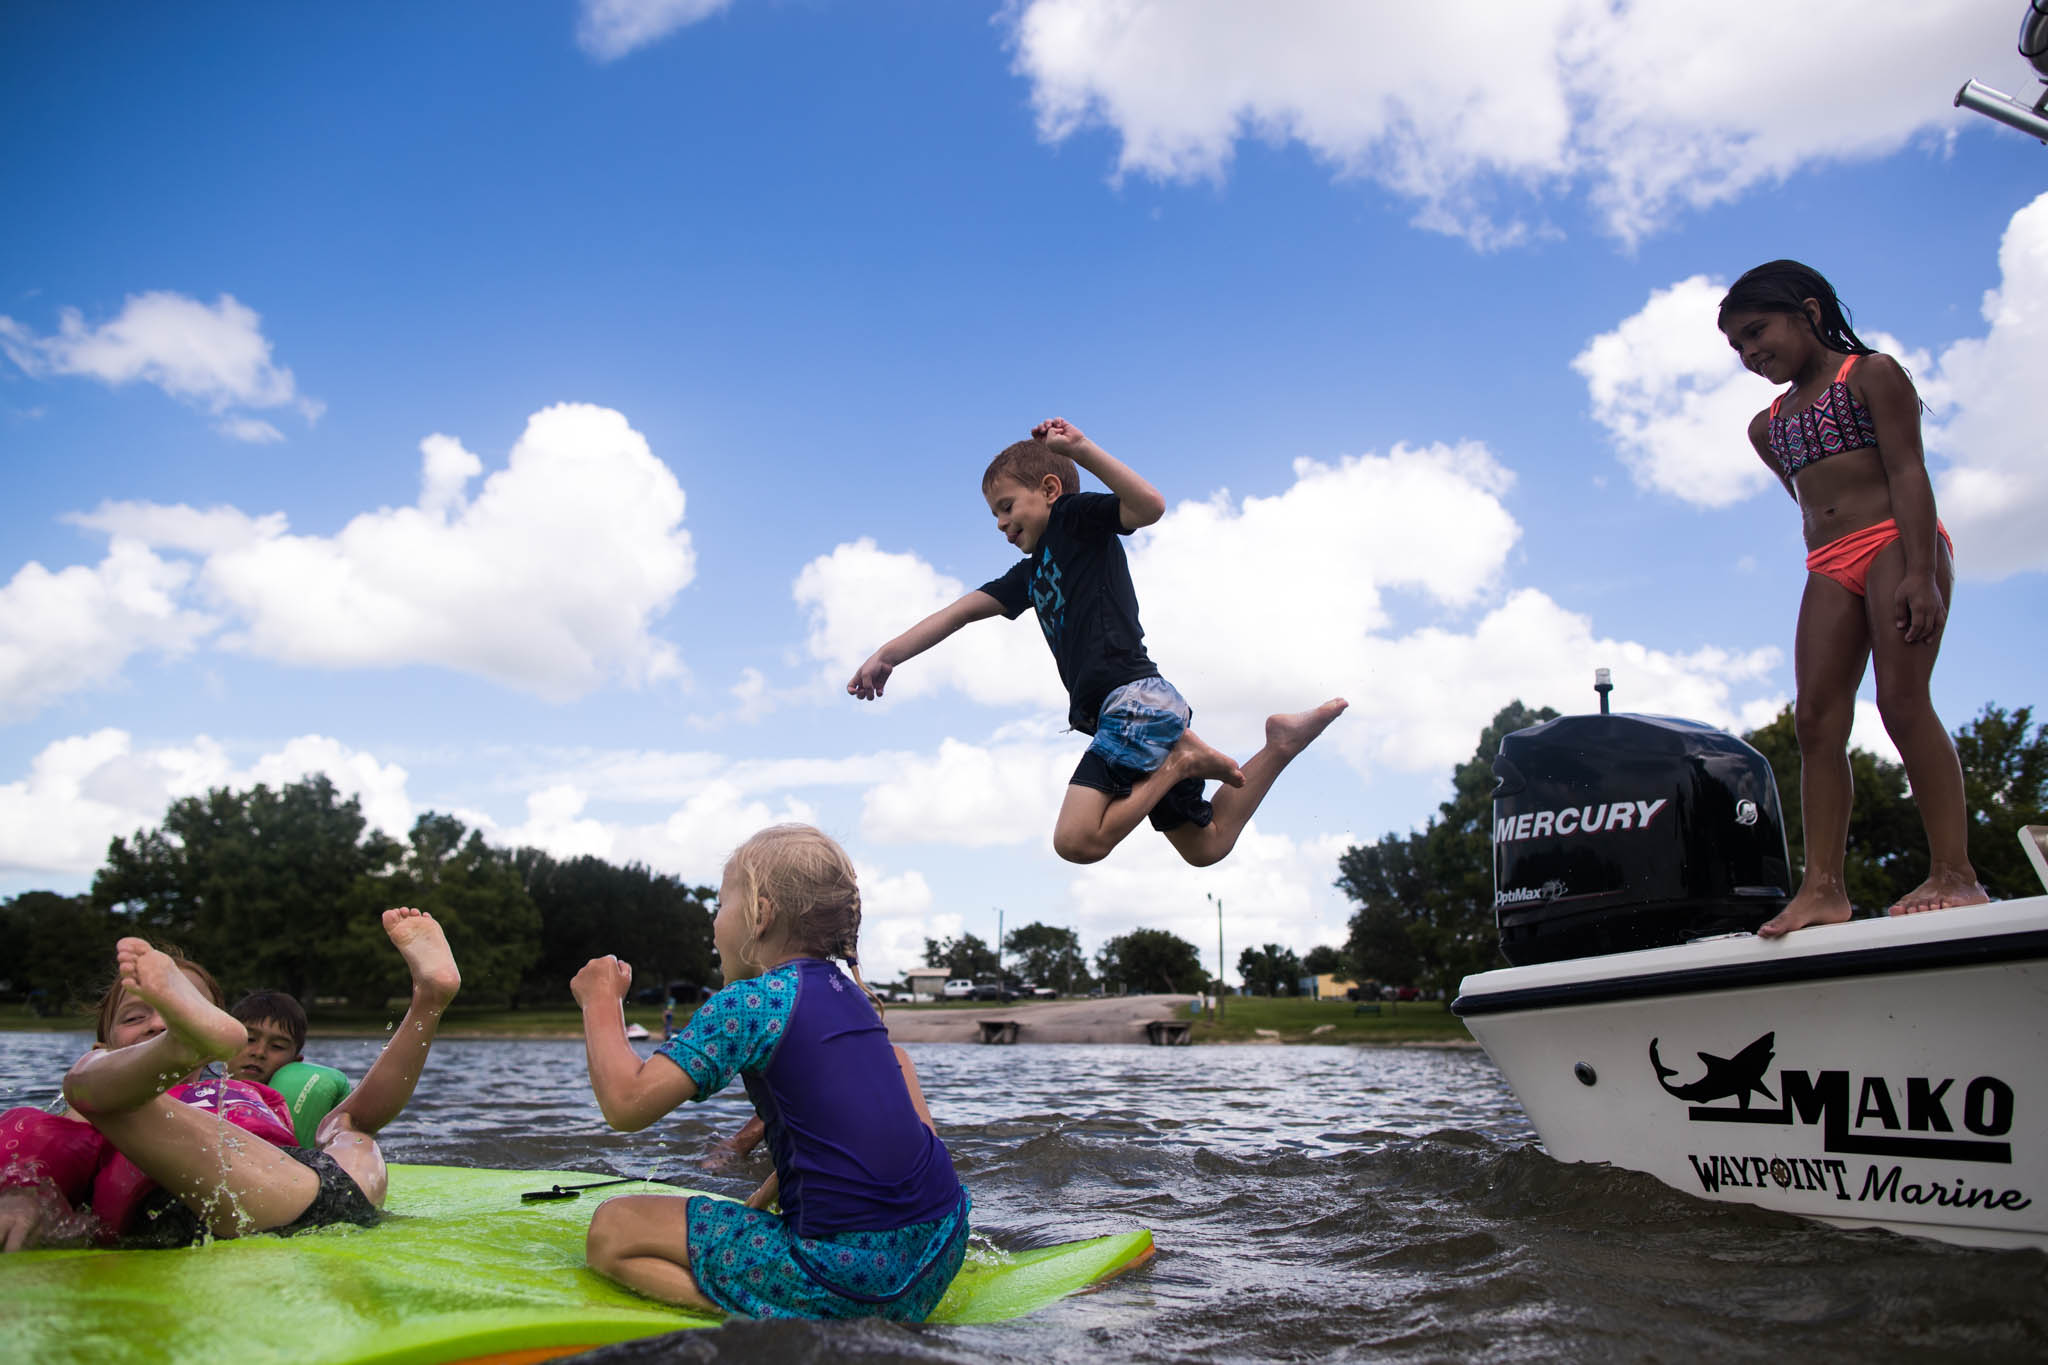 Lawren Rose Photography, a documentary family photographer, captures an image of a boy jumping very high into the lake